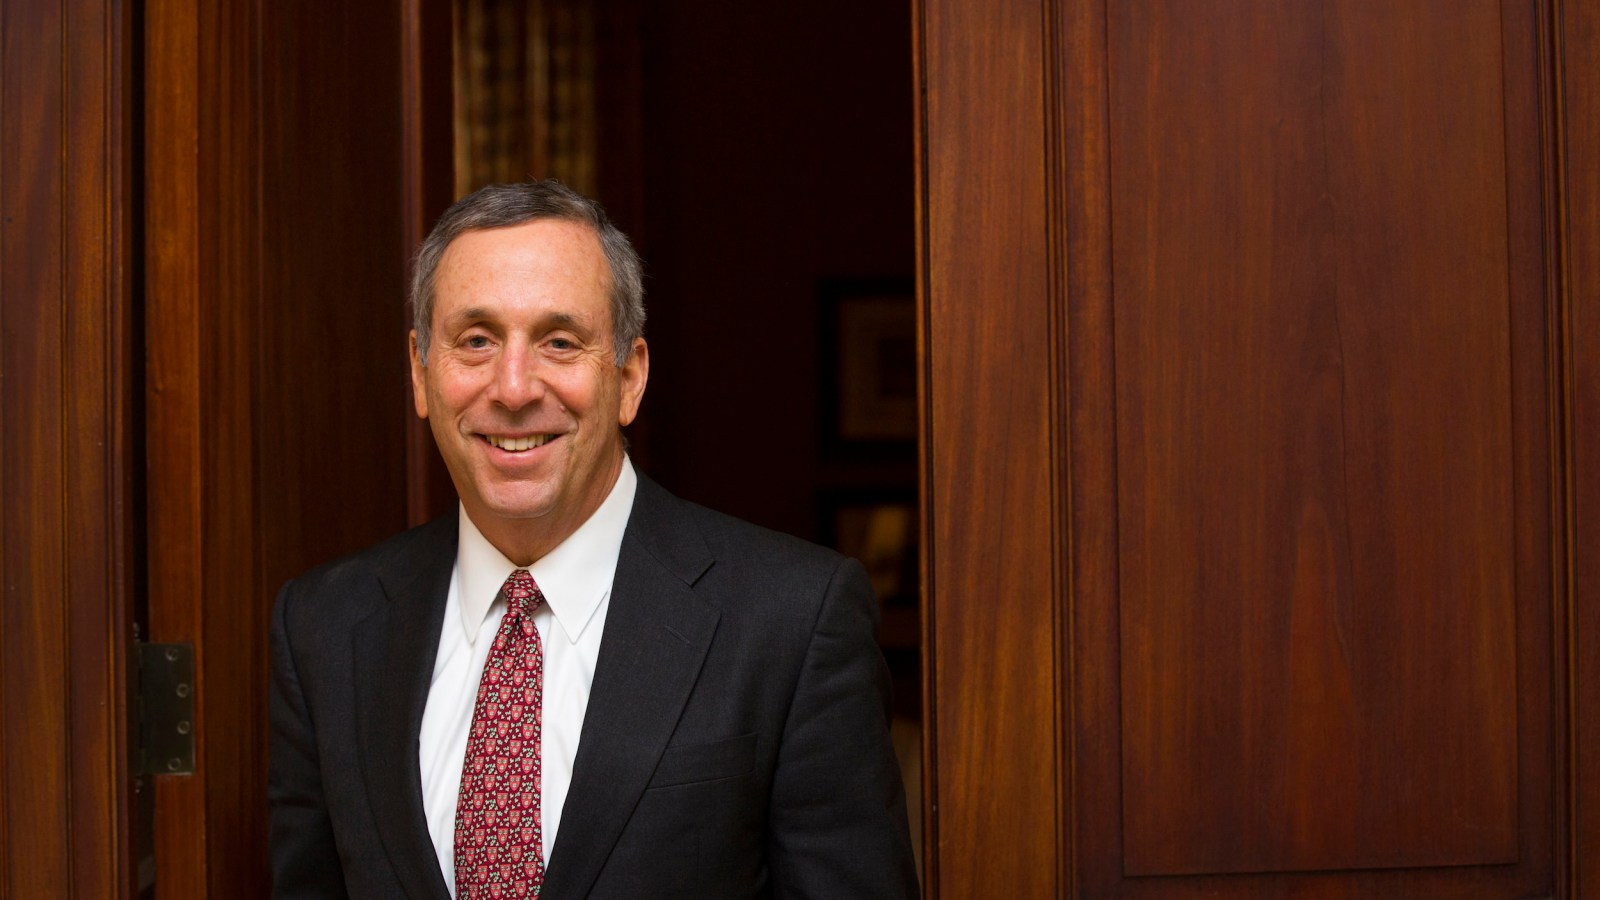 The importance of freedom in academic institutions was also highlighted by the president of Harvard, Lawrence S Bacow, during his recent week-long trip to Asia. (Image: Image Courtesy Harvard University)